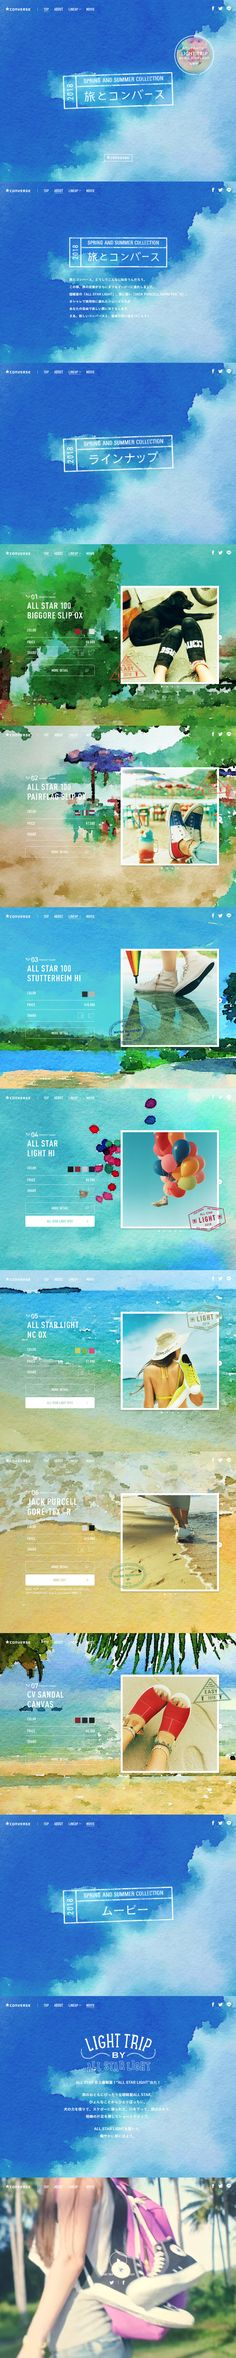 ALL STAR LIGHT|SANKOU! Pokemon Poster, Web Design, Graphic Design, All Star, Knowledge, Walls, Japan, Templates, Drawings